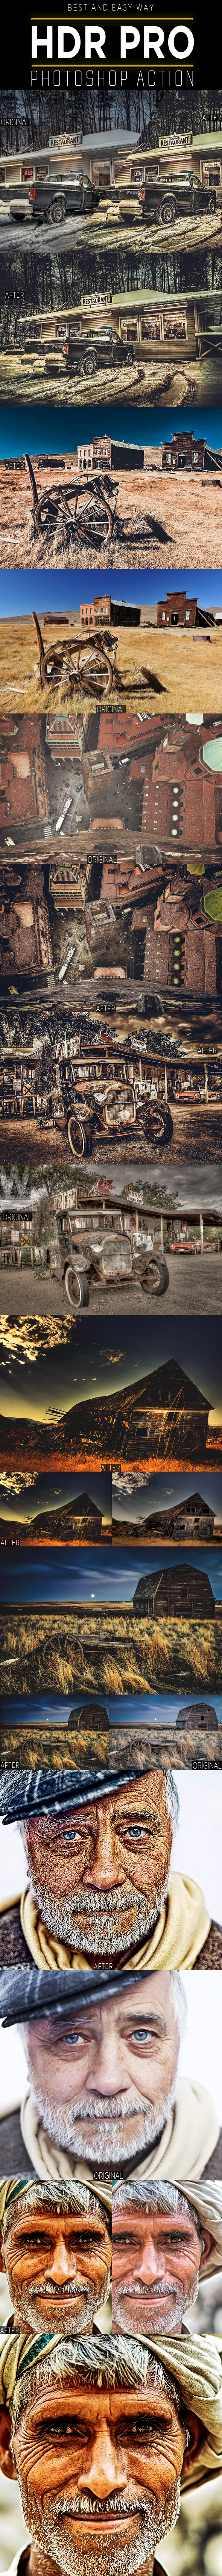 HDR PRO  Photoshop Action - Photo Effects Actions